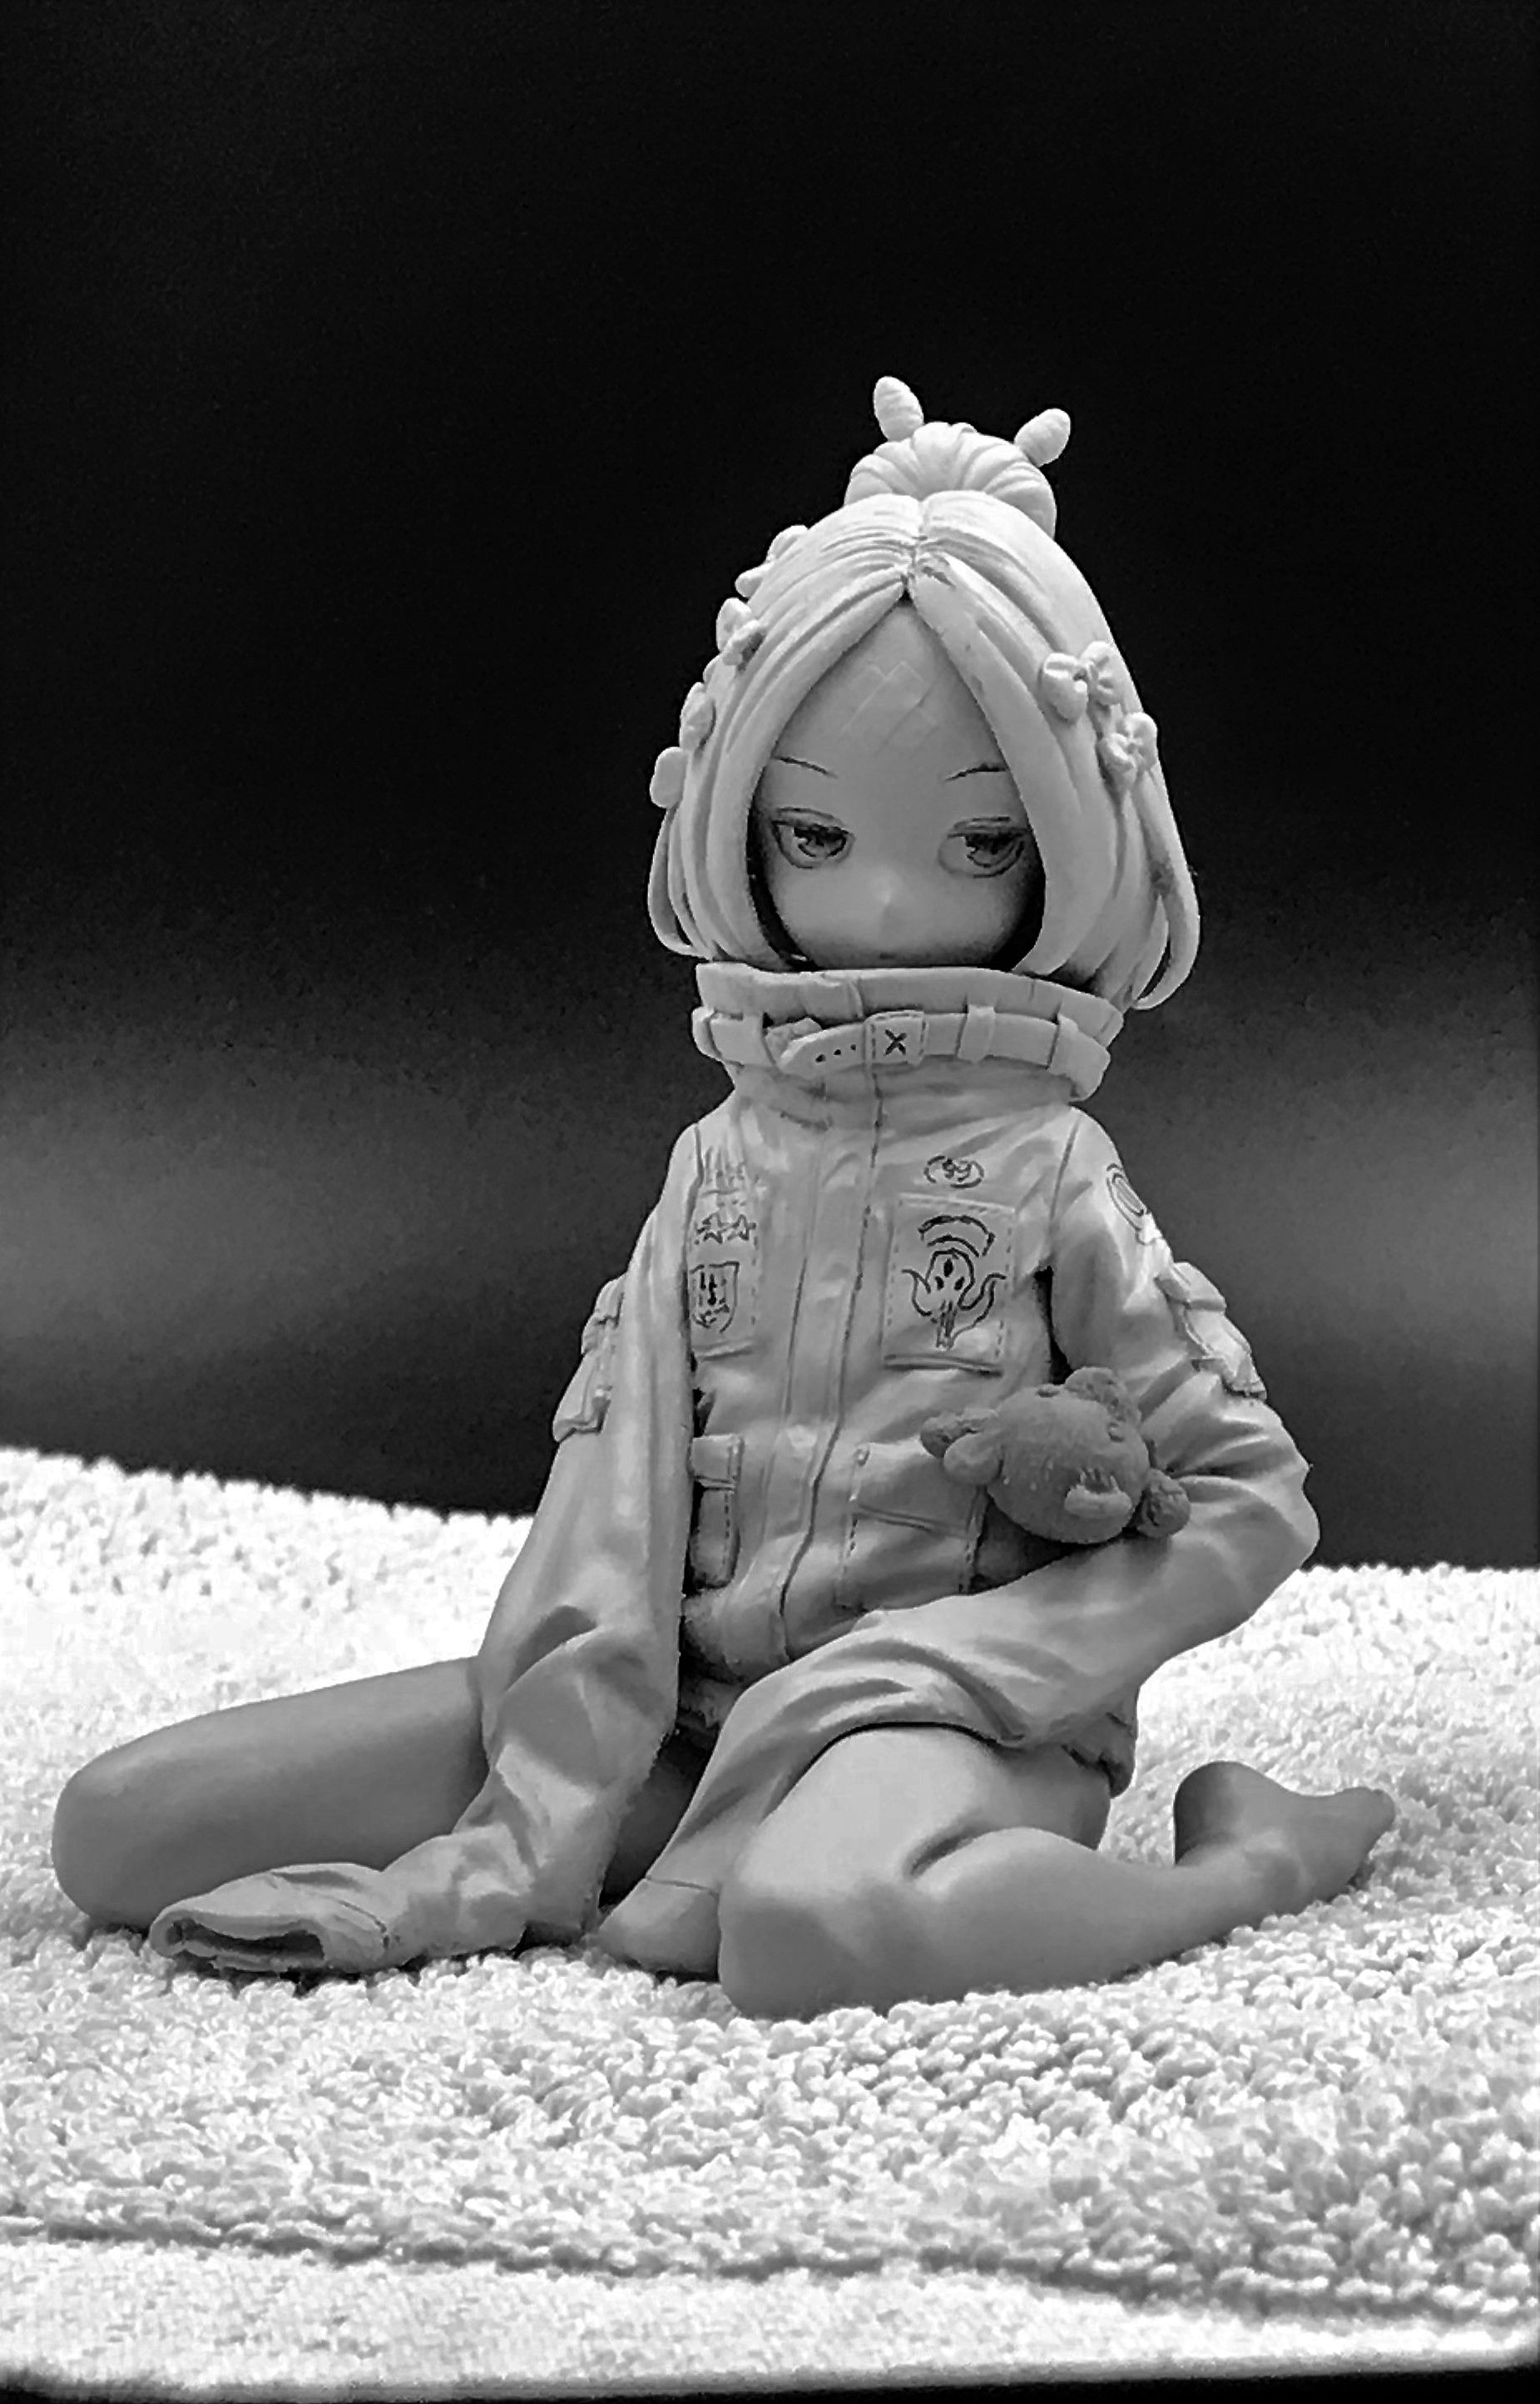 Pin By Diane Persaud On Sculptures In 2019 Anime Art